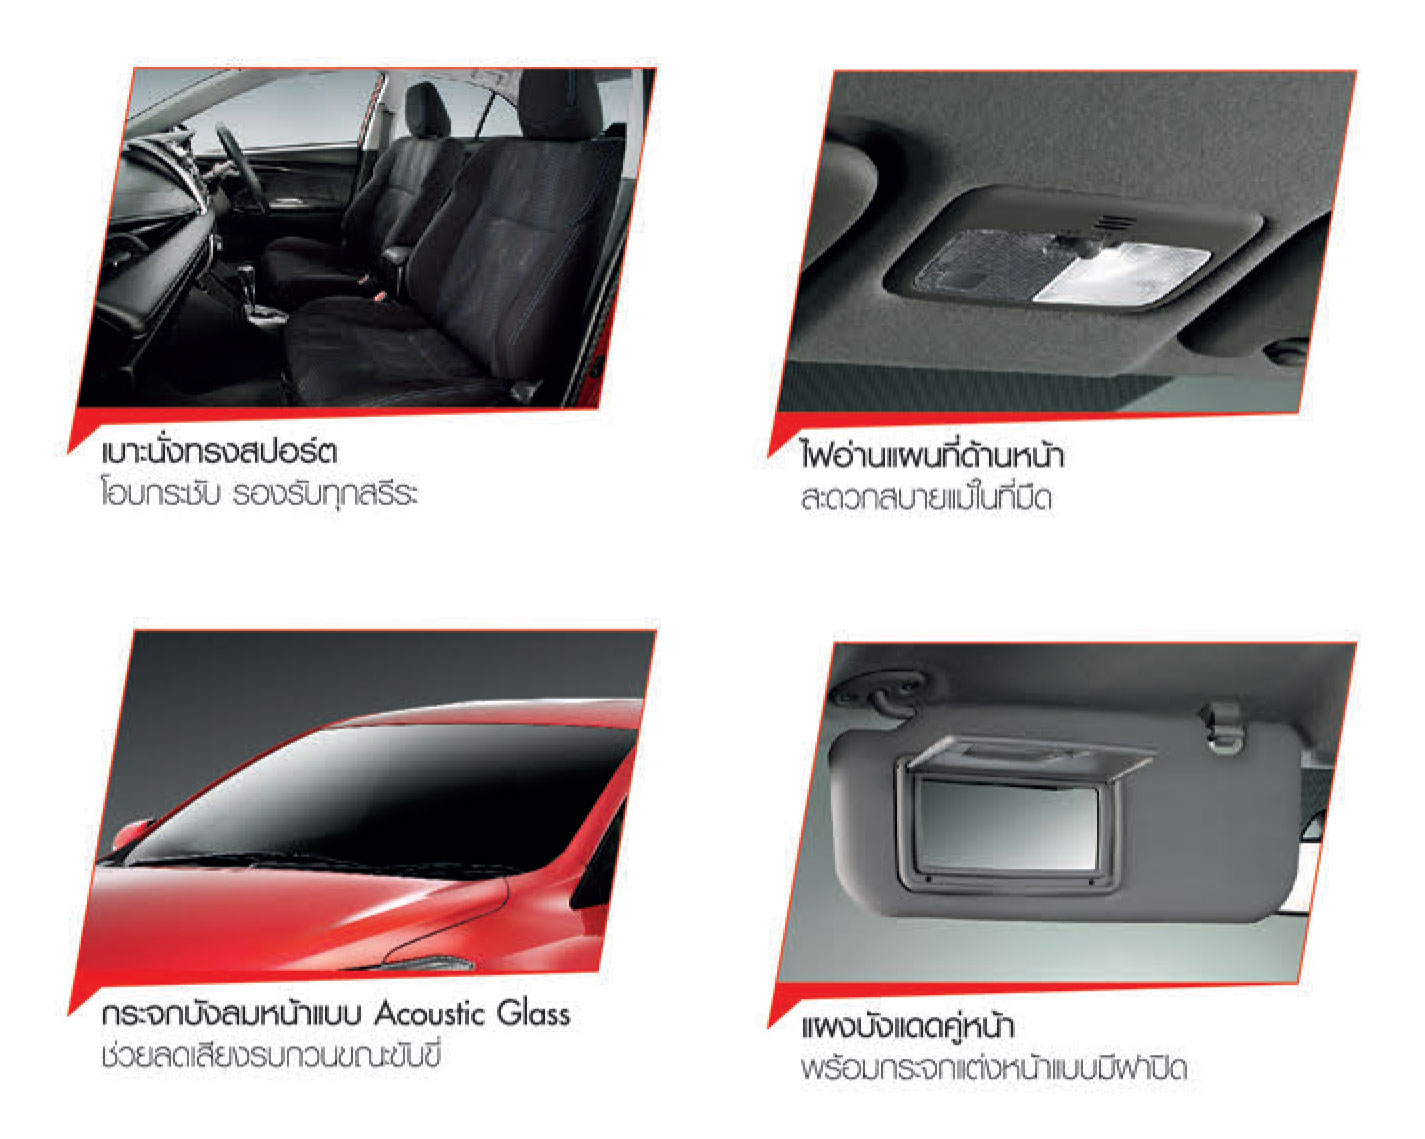 2013 Toyota Vios launched in Thailand – full details Image 163534